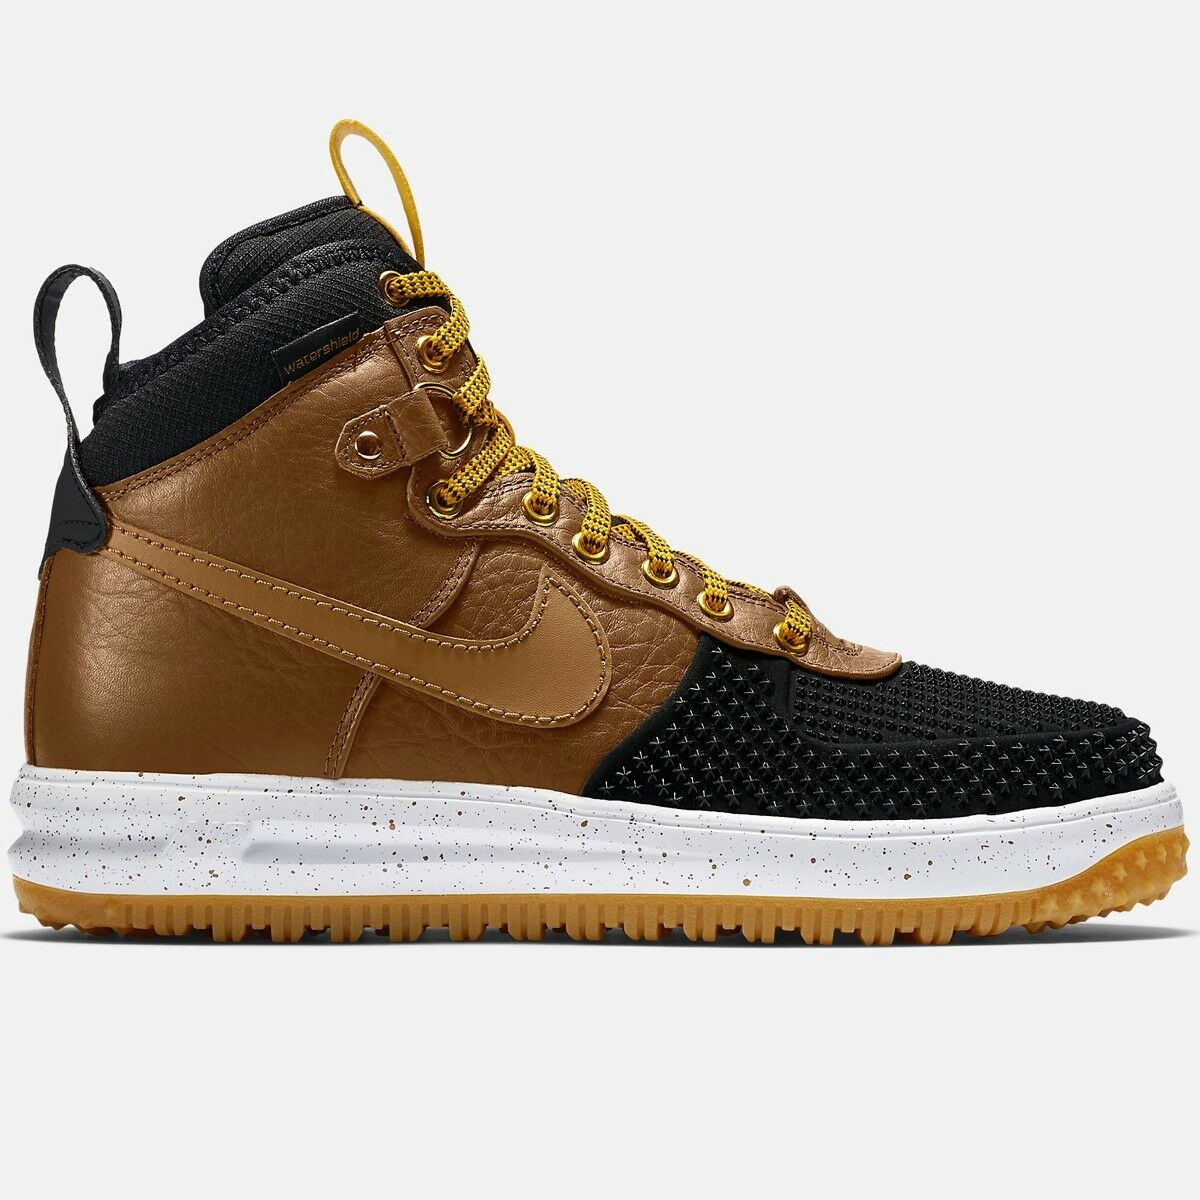 Nike Lunar Force 1 LF1 Sz 9 Air Duckbota British Tan Marrón Negro Goma 805899 004